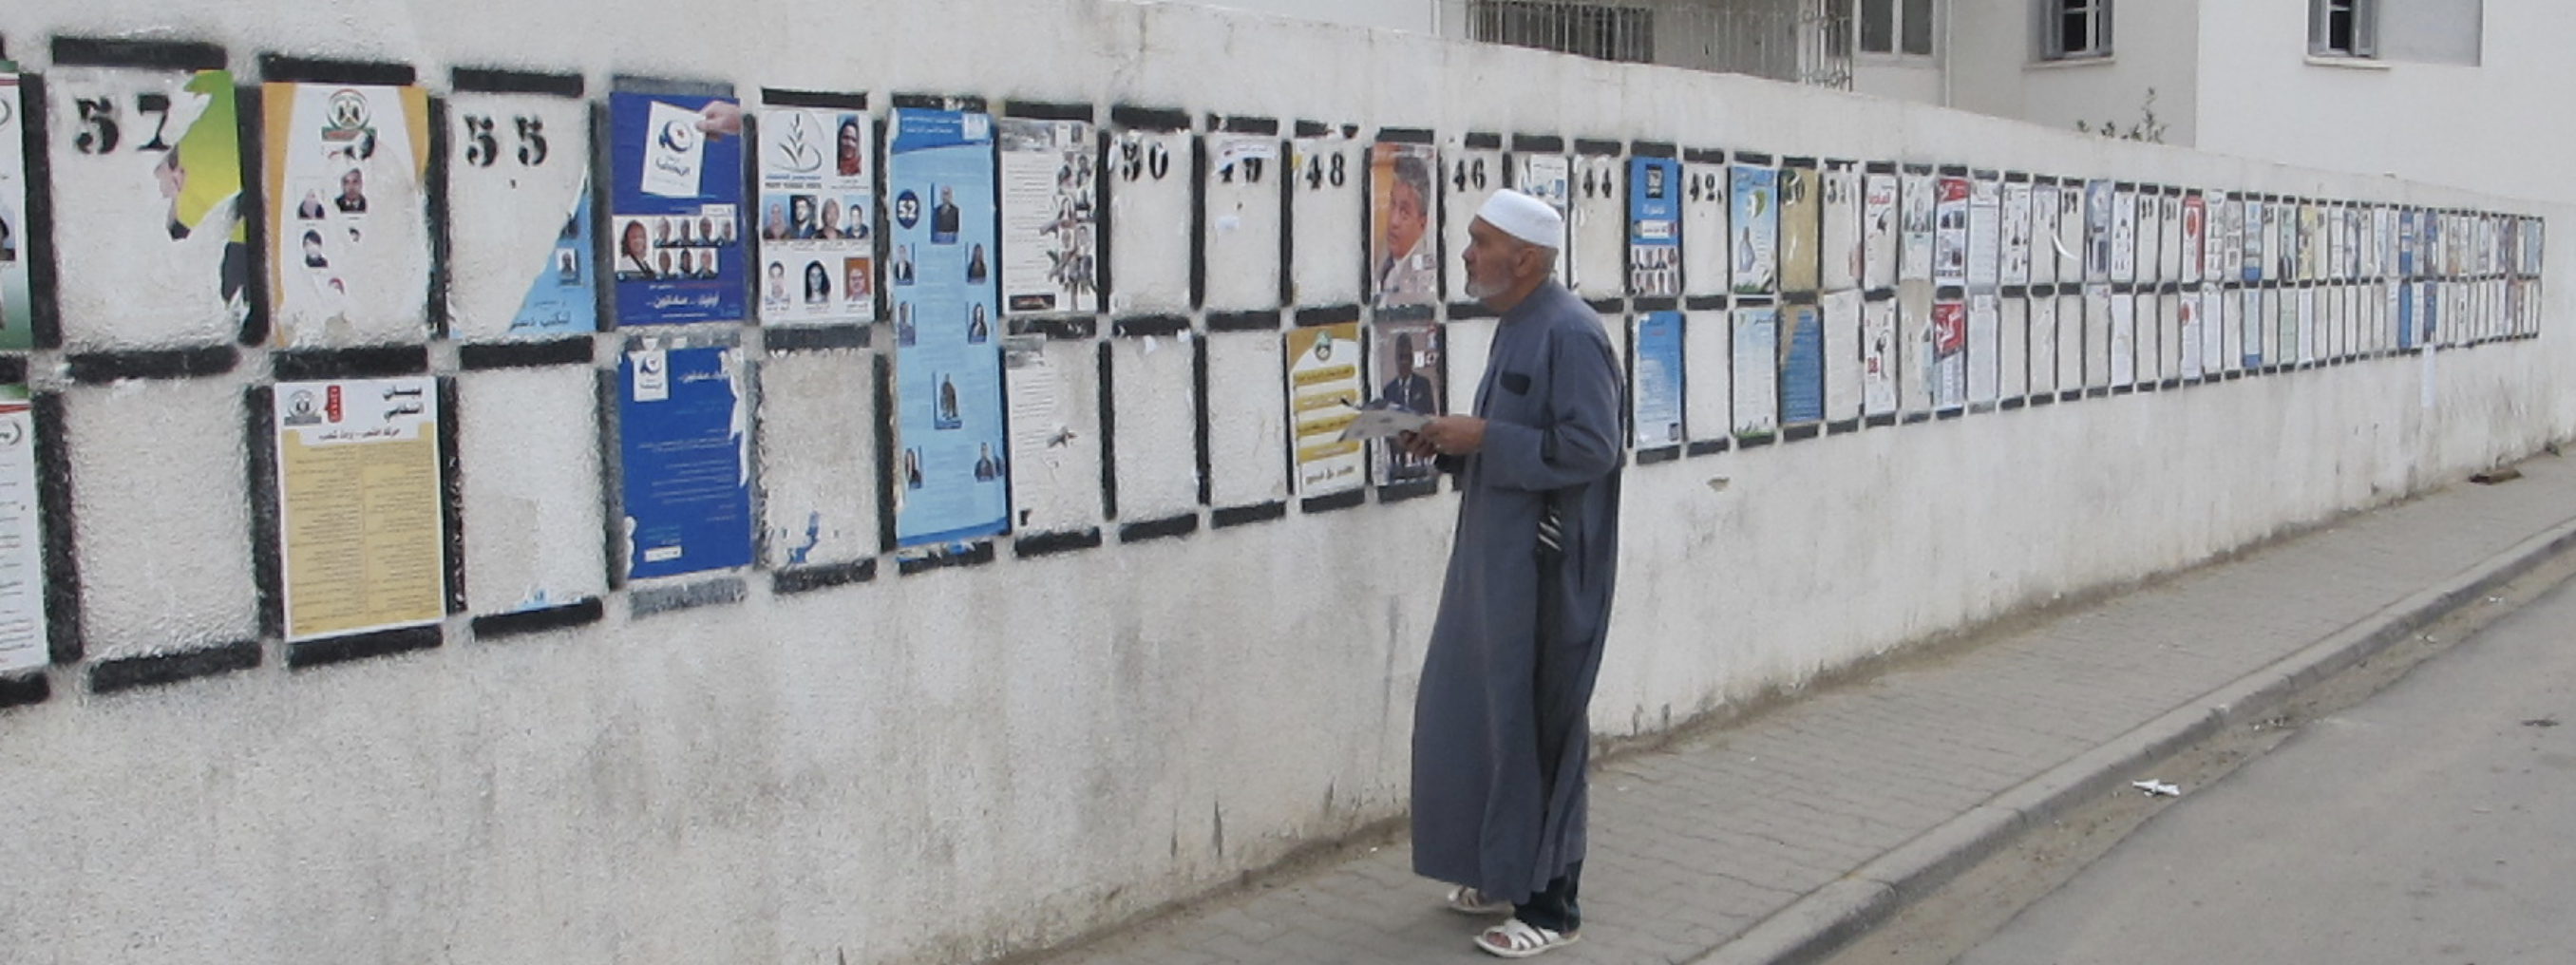 A voter checks electoral lists before assembly elections in Tunisia. UNDP/Noeman Al-Sayyad.